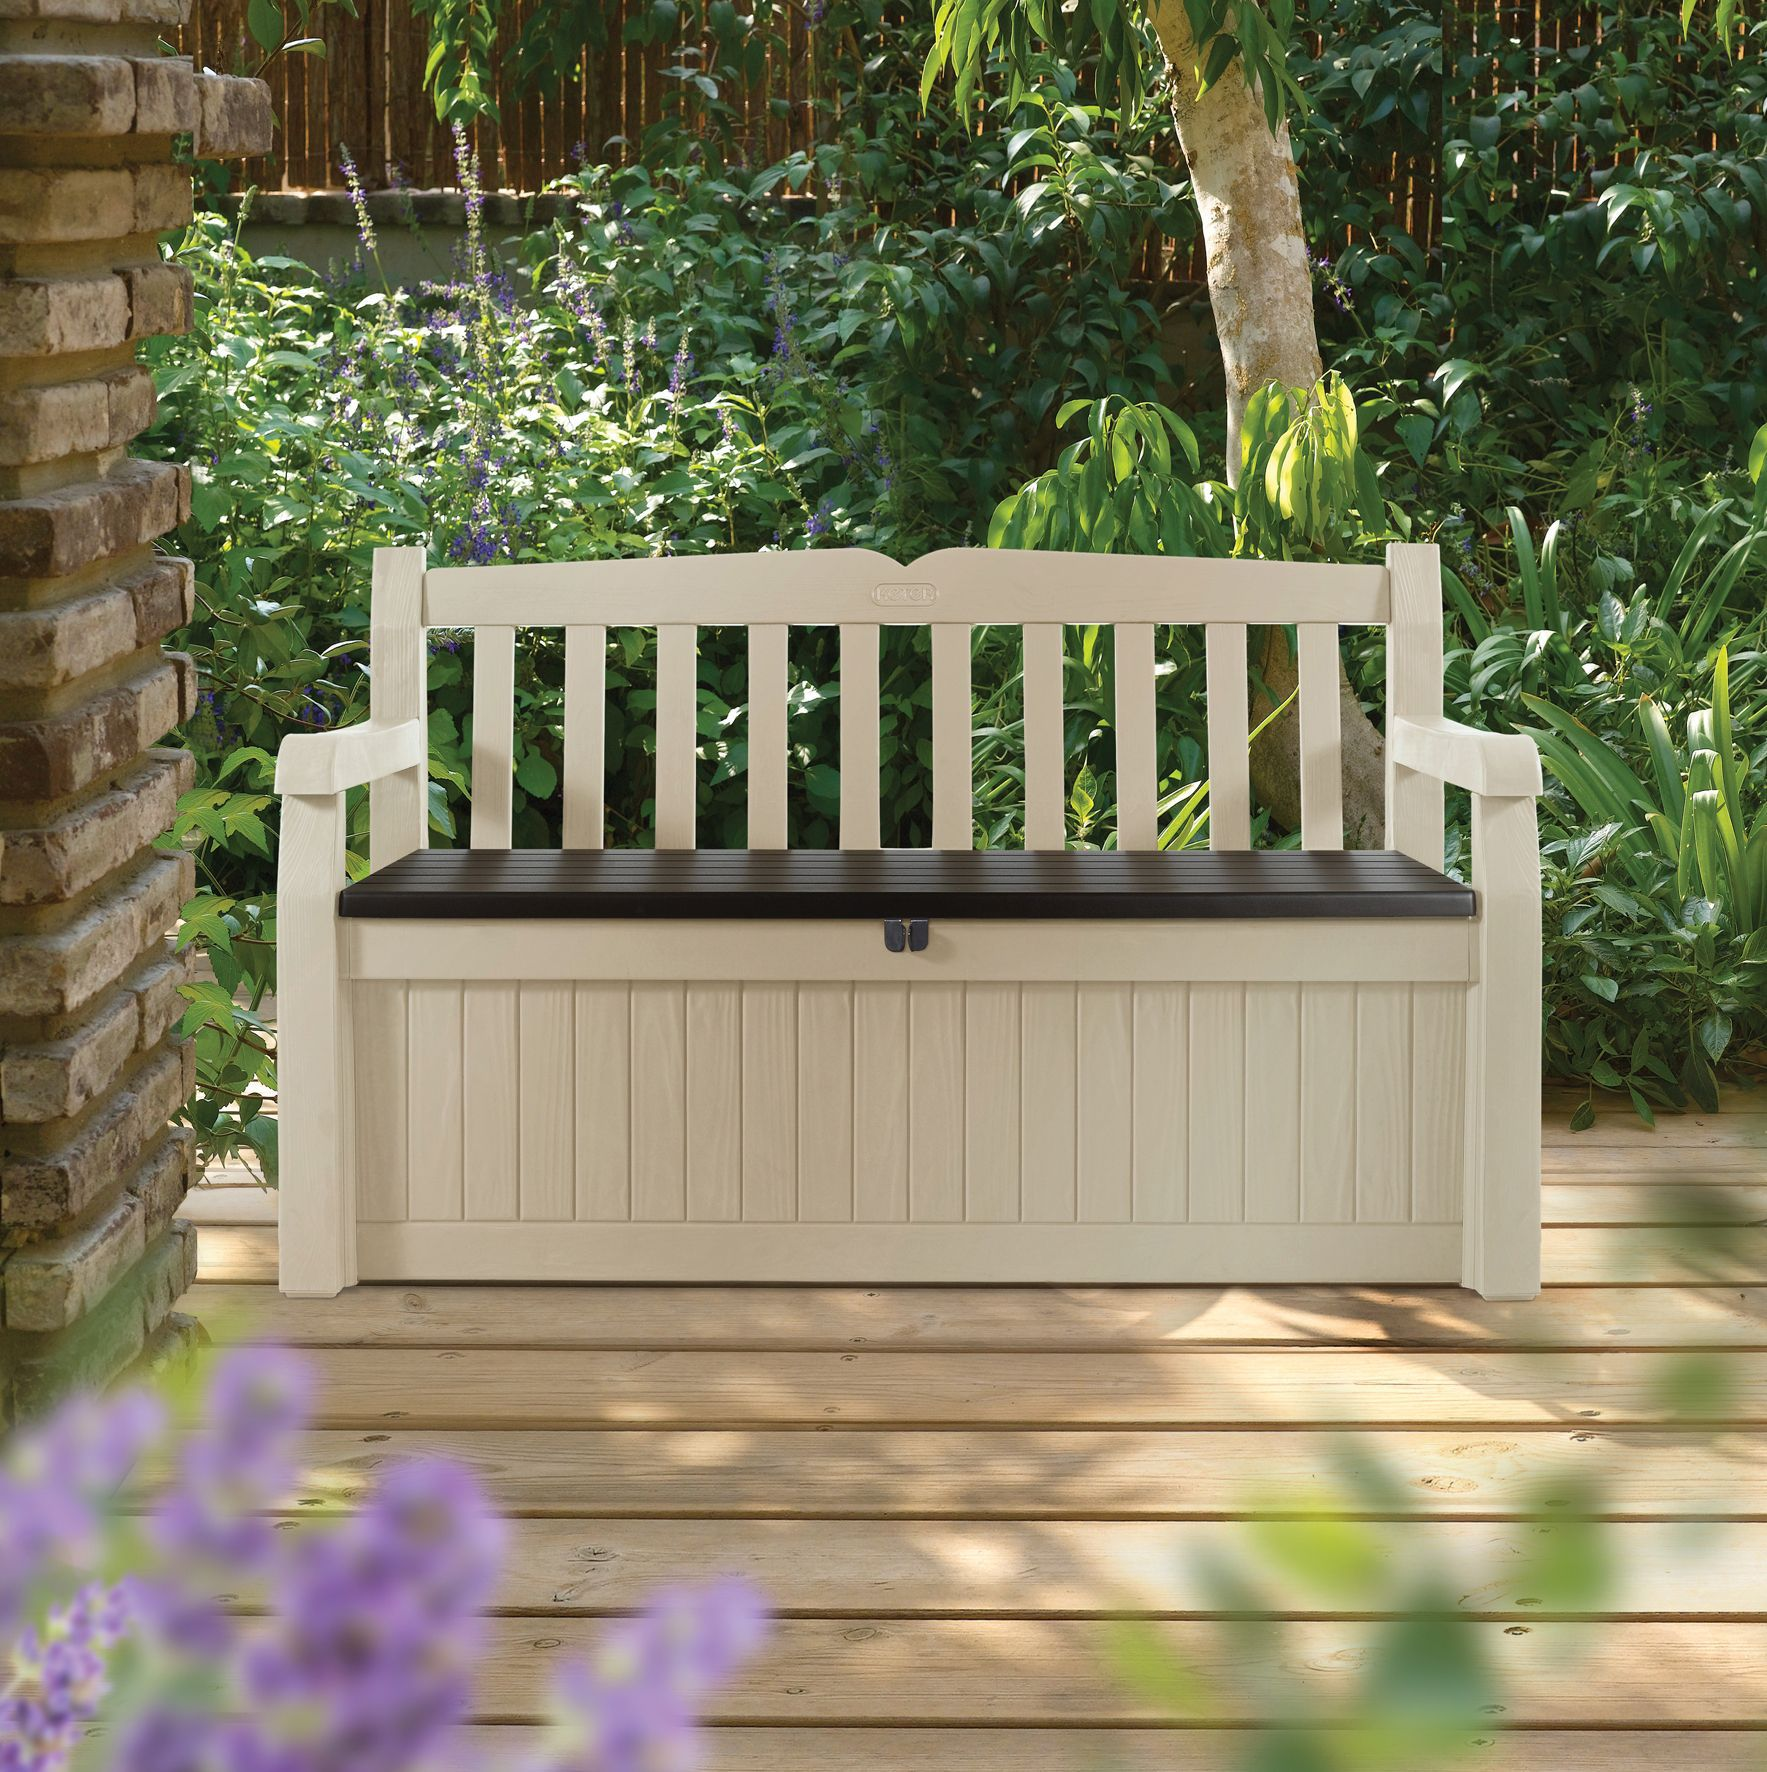 eden plastic garden storage bench departments diy at b q. Black Bedroom Furniture Sets. Home Design Ideas